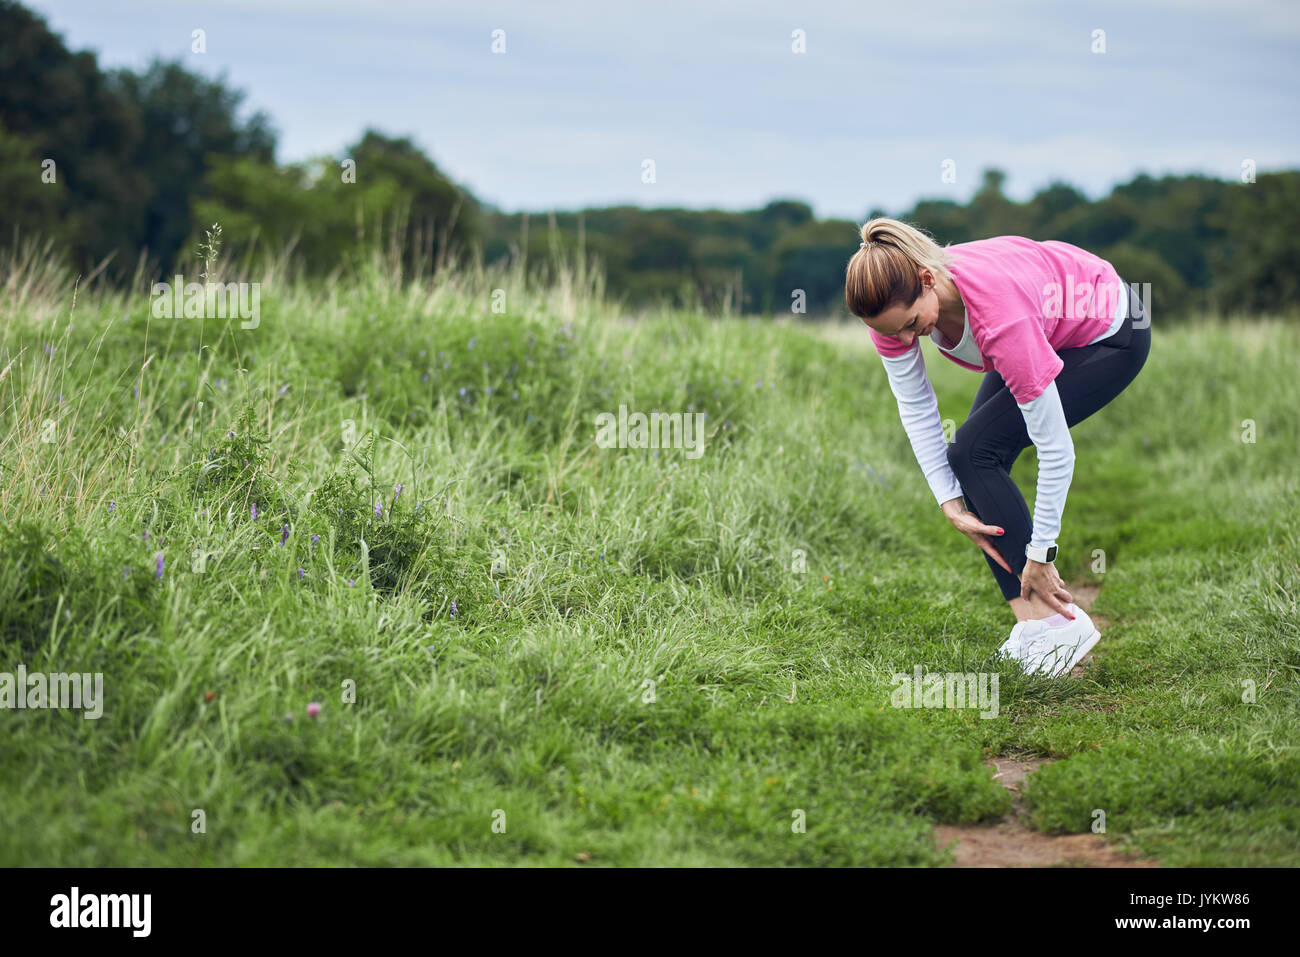 An exercising woman in fit wear while running outdoors, stop to clutch an injured ankle. - Stock Image